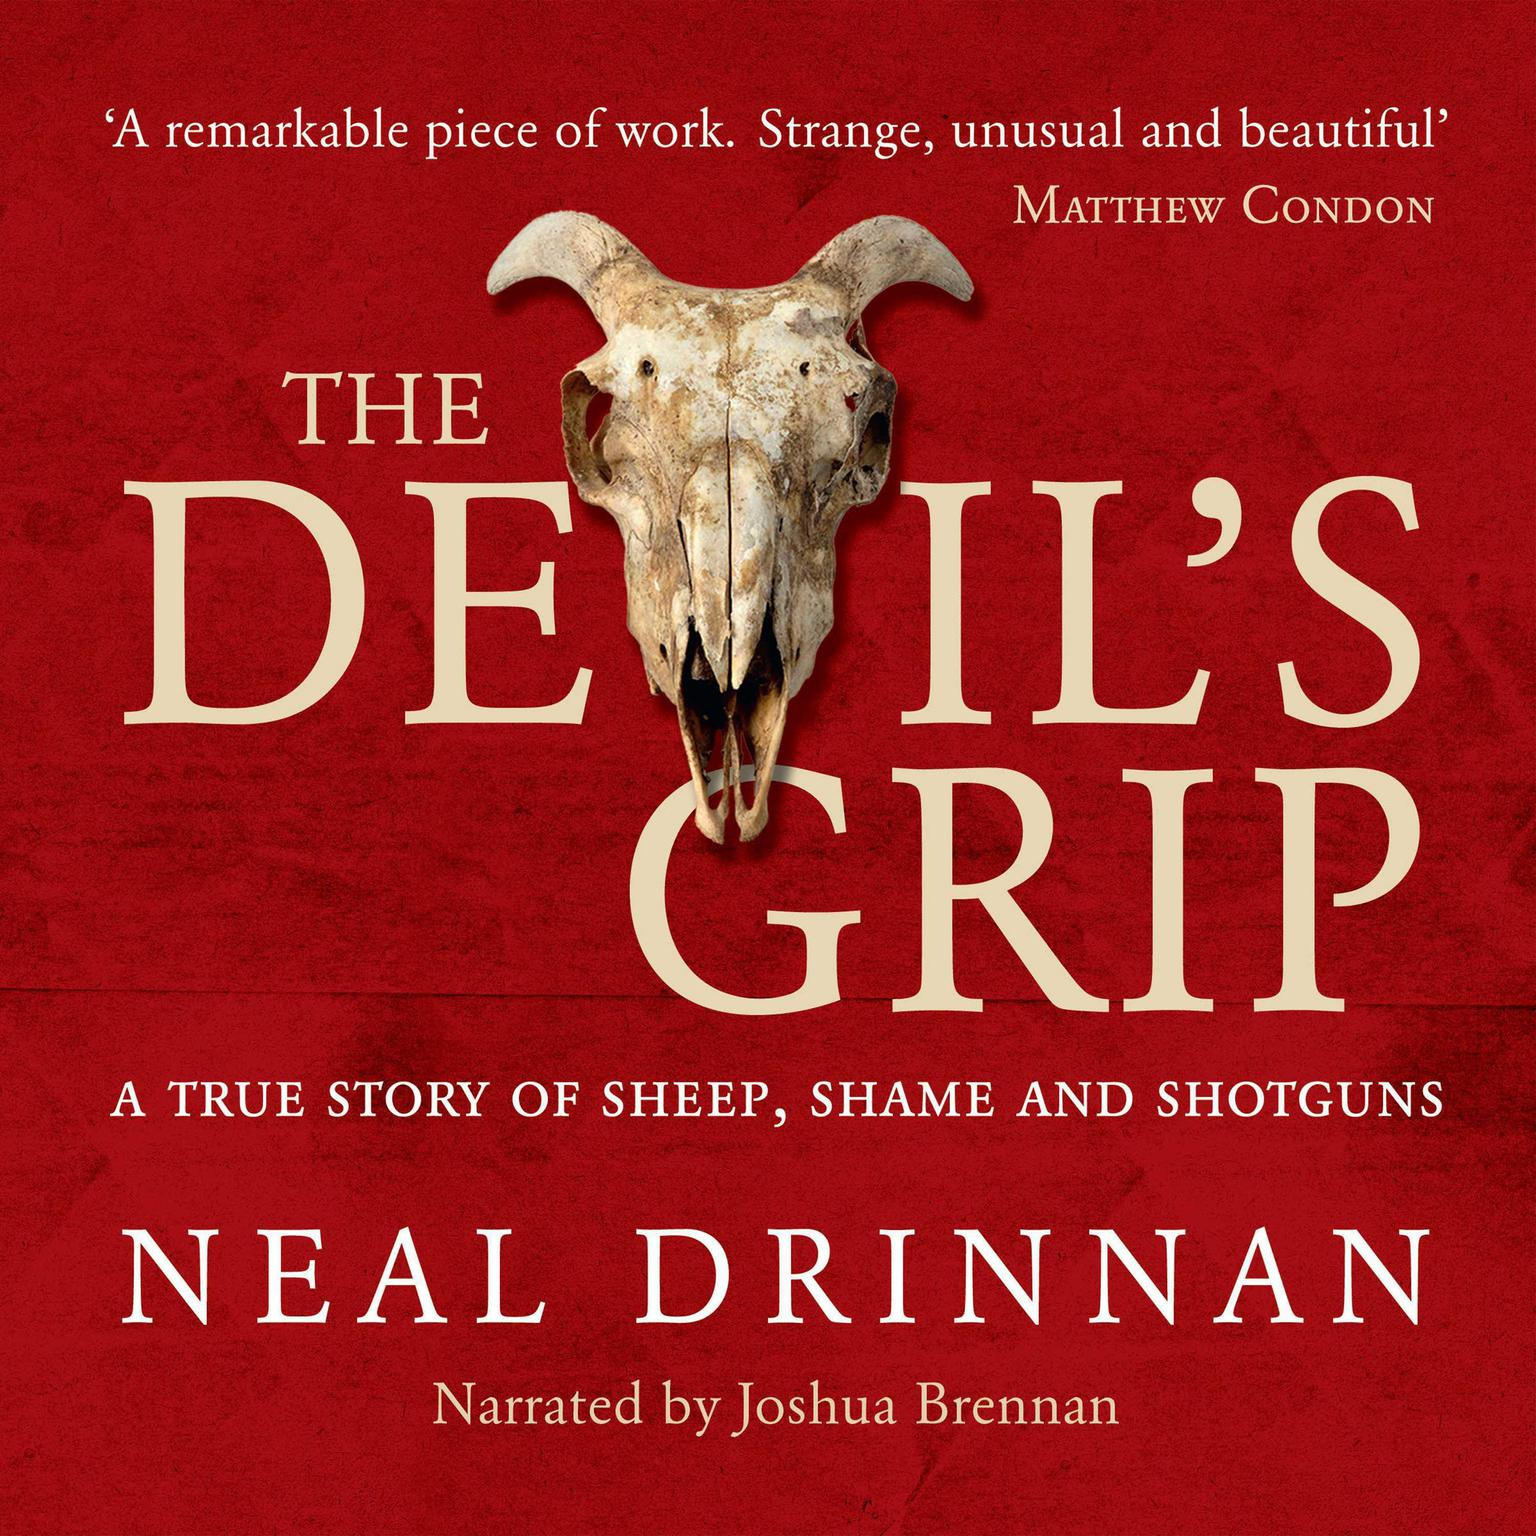 Printable The Devil's Grip: A true story of shame, sheep and shotguns Audiobook Cover Art